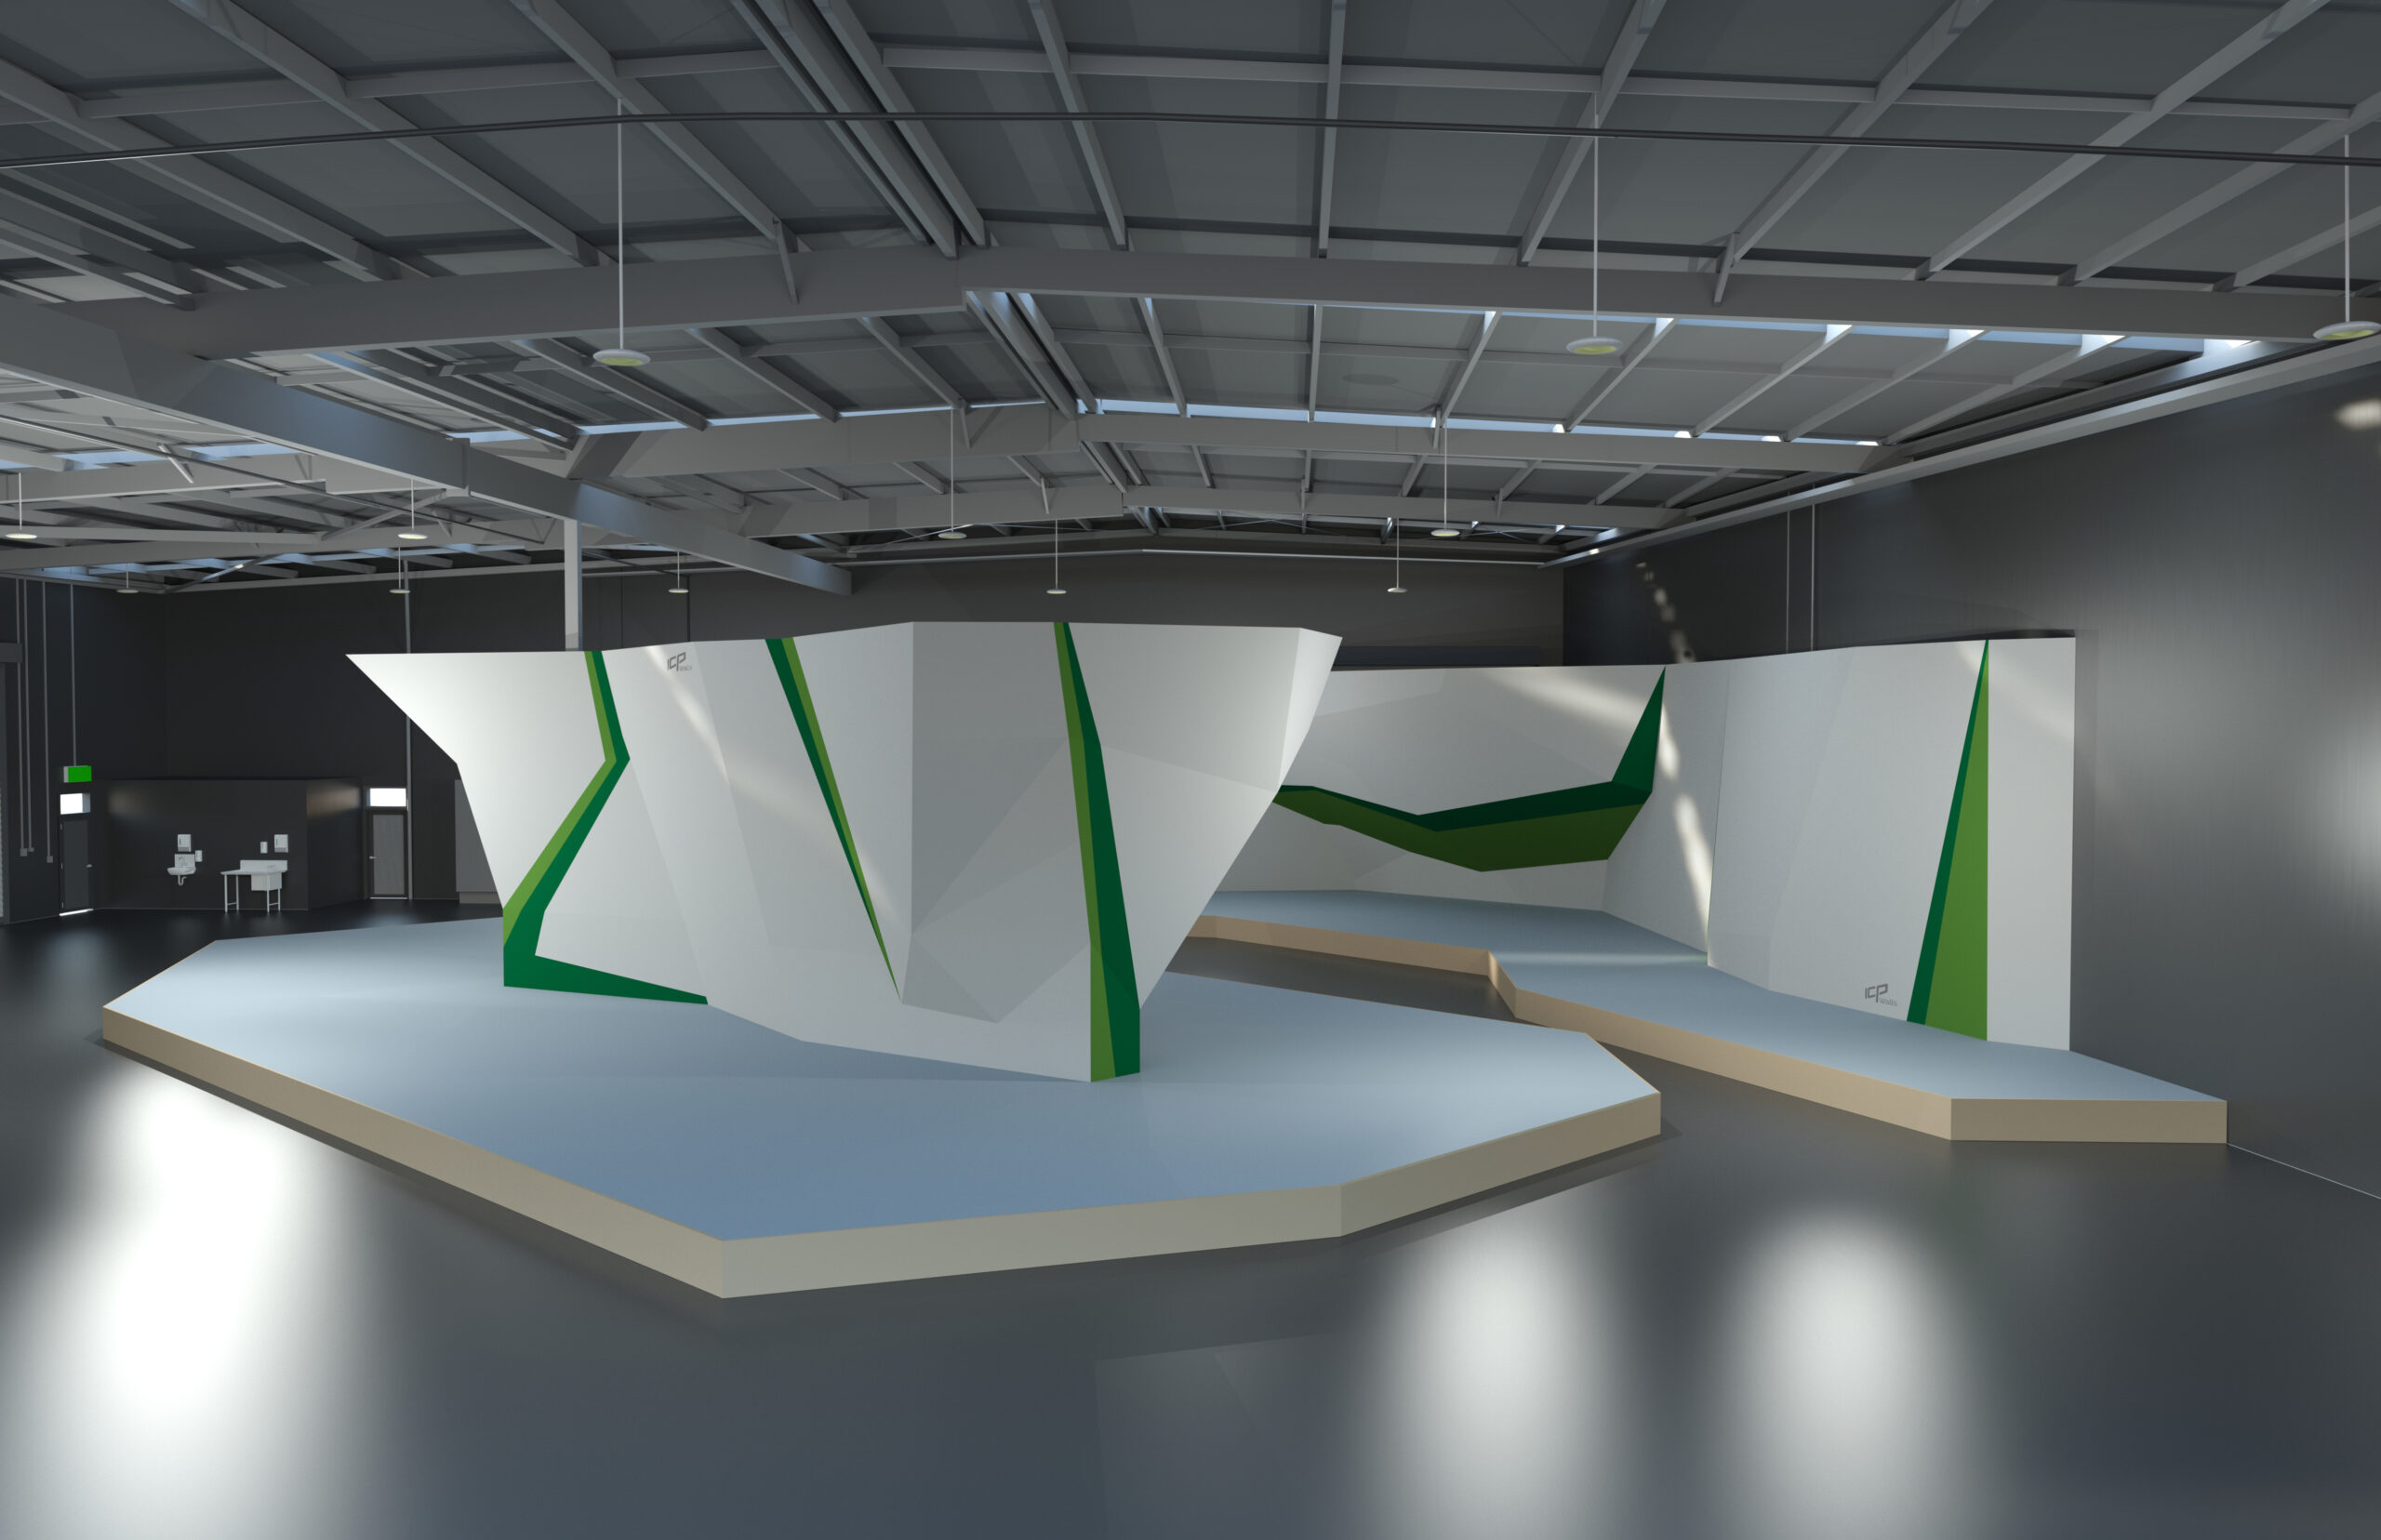 flow climbing walls designed by ICP, shows a great view of bouldering cave and free standing island.